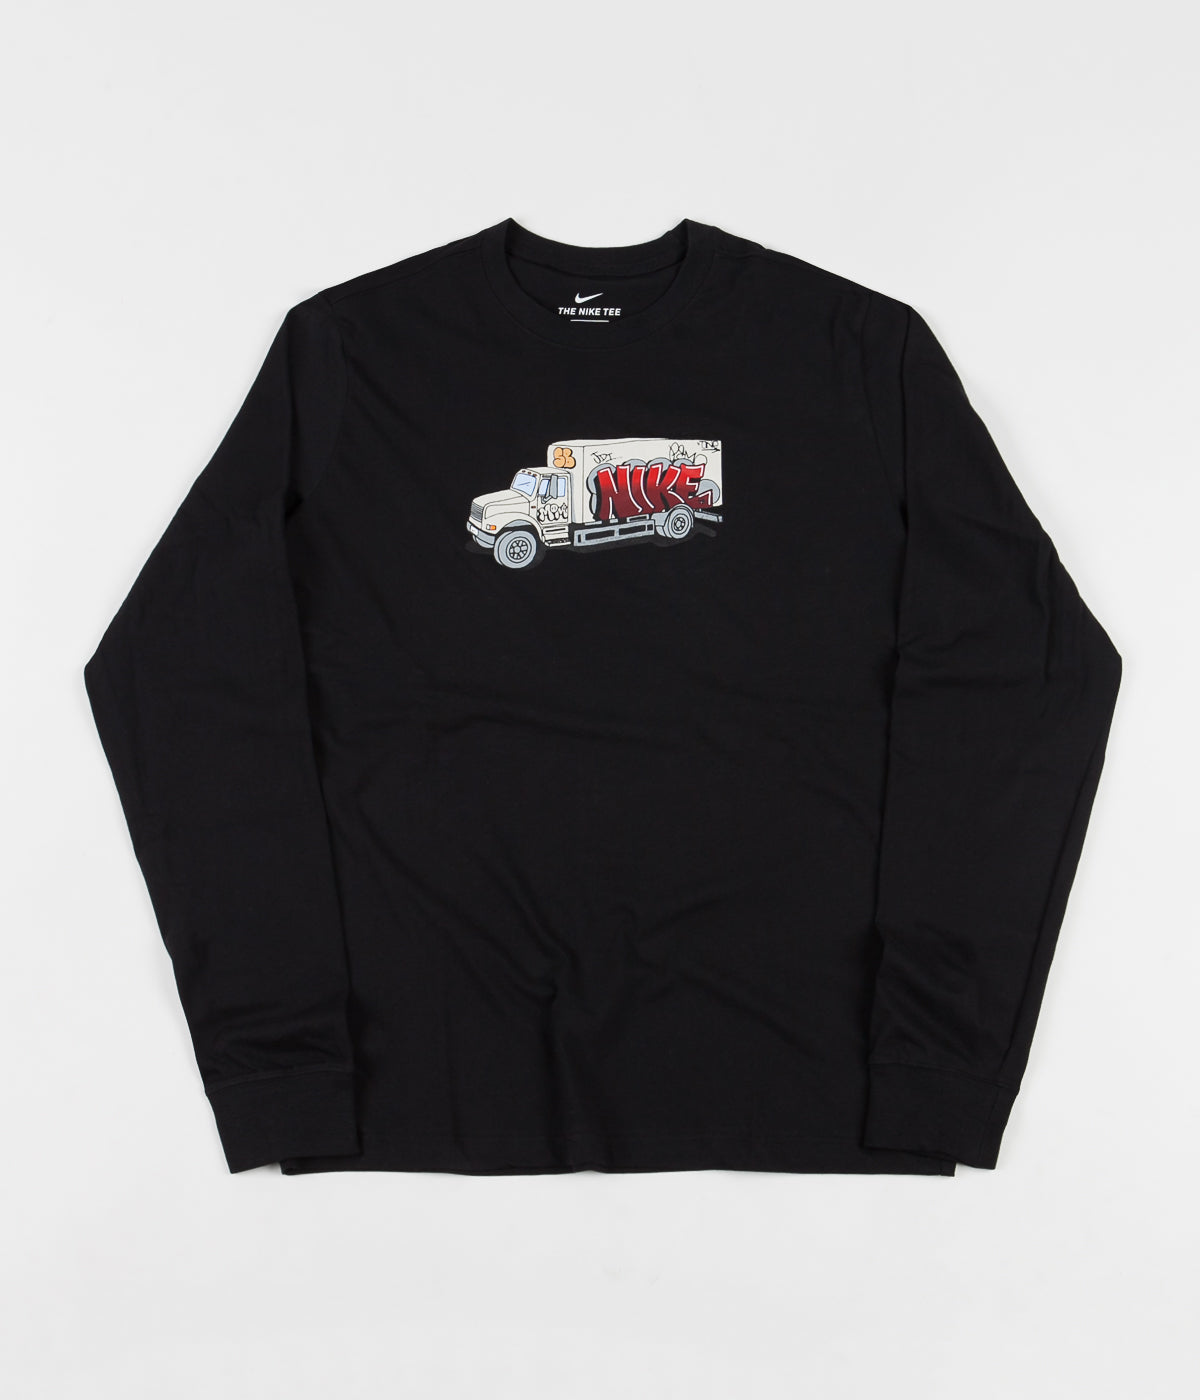 Nike SB Box Truck Long Sleeve T-Shirt - Black